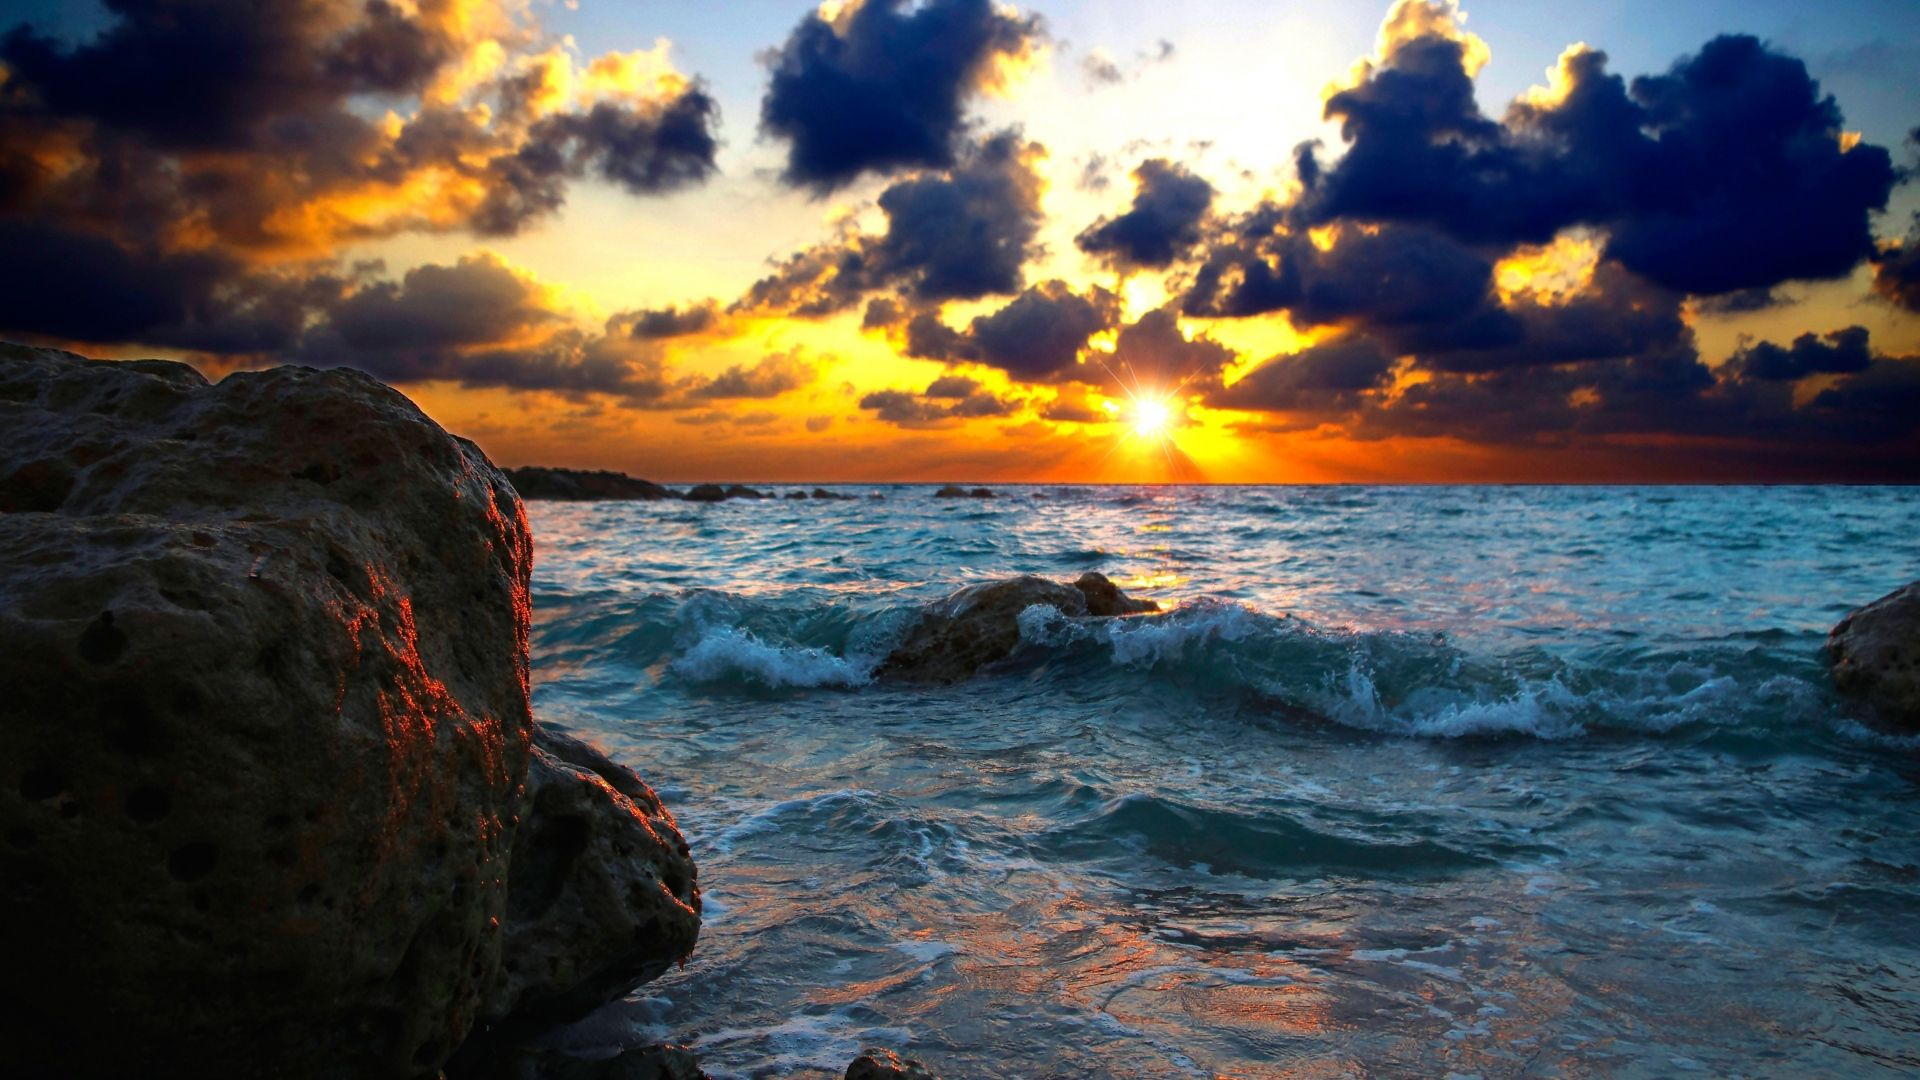 Download Wallpaper 1920x1080 Sea, Surf, Sunset, Stones